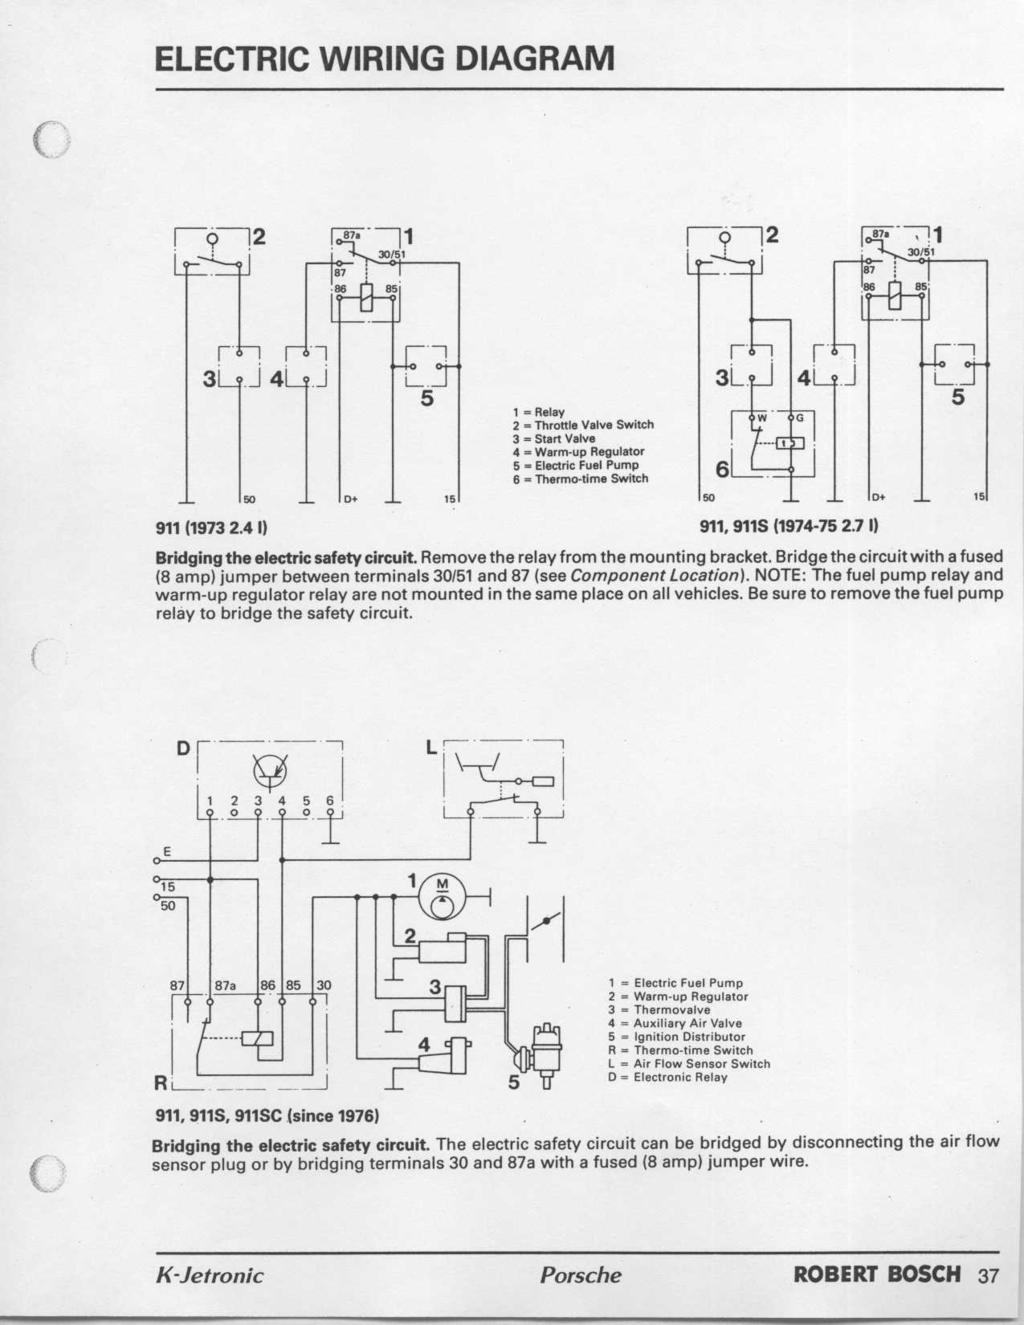 Porsche 911 85 Wiring Diagram - Wiring Diagram Experts on speakers diagram, amp install, radio diagram, car amp diagram, 2001 nissan maxima fuse box diagram, amp help, amp connectors diagram, amp circuit, amp wire, circuit diagram, amp wiring chart, amp wiring kit, amp power, amp plug, amp fuse, amp schematic, subwoofer diagram, ipod diagram, amp installation diagram, navigation diagram,